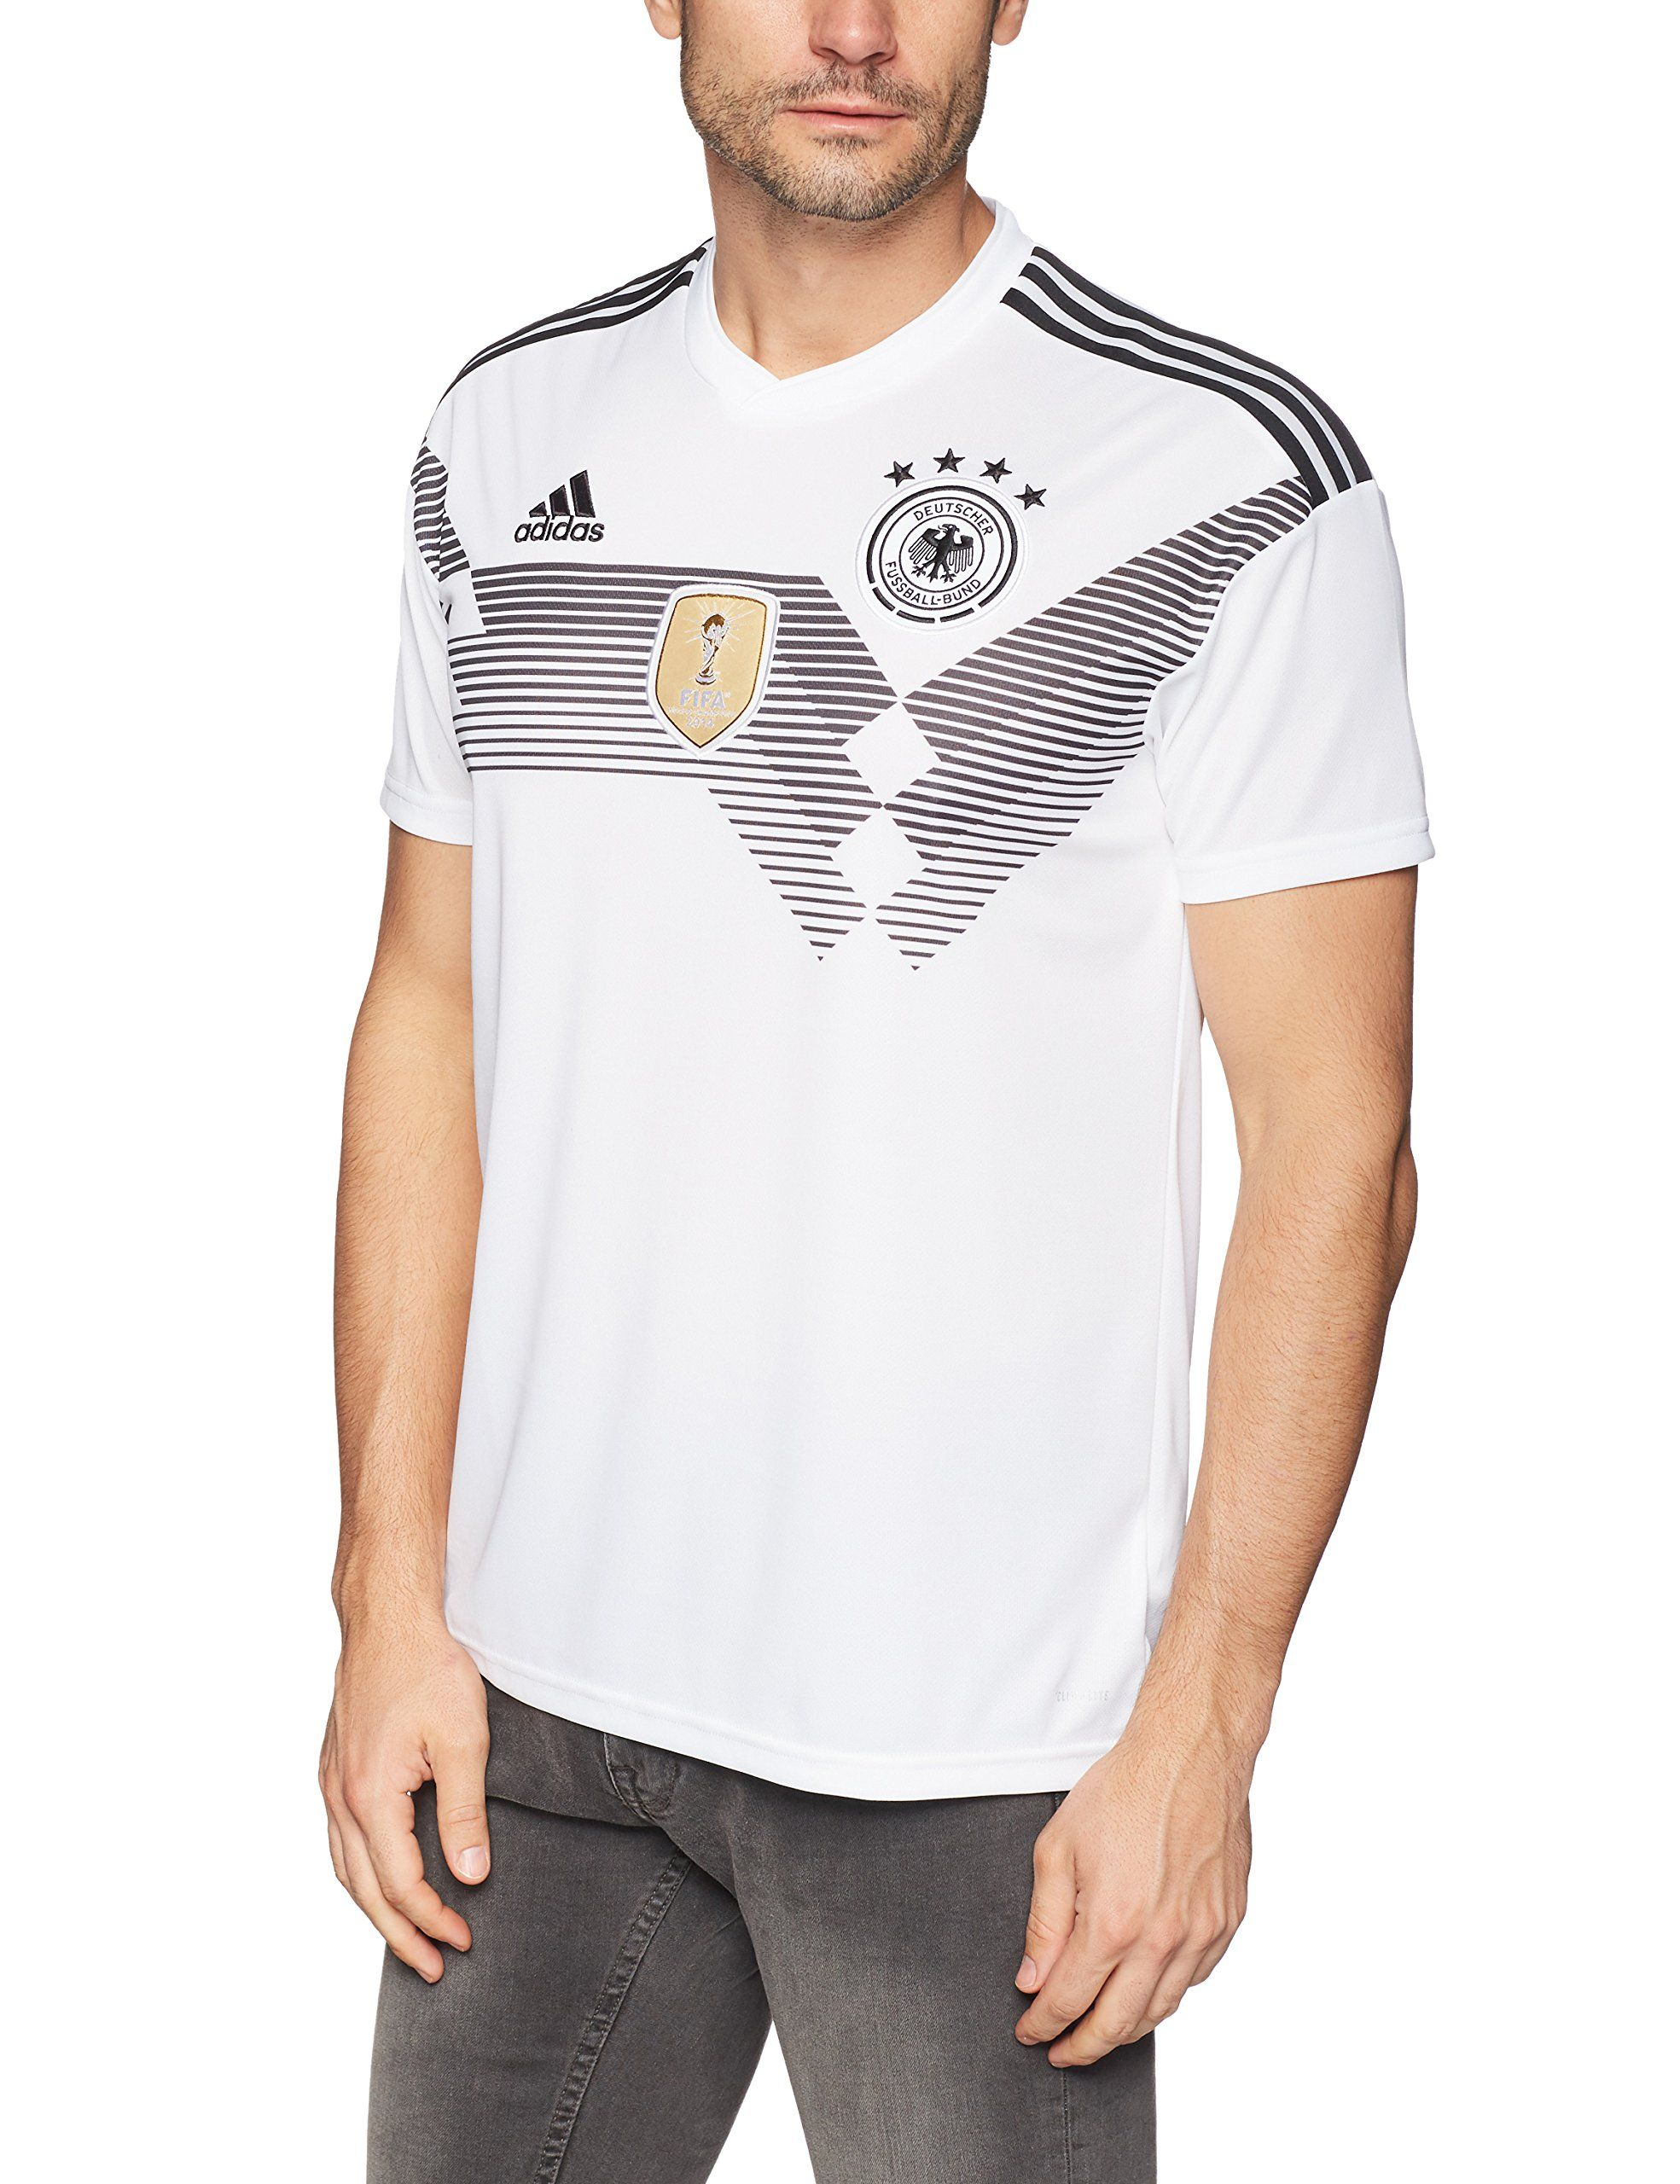 Adidas Germany Home Shirt 2017 19small Adults Take A Look At This Fantastic Product This Is An Affiliate Link Futbol Mens Tops Mens Tshirts Shirts